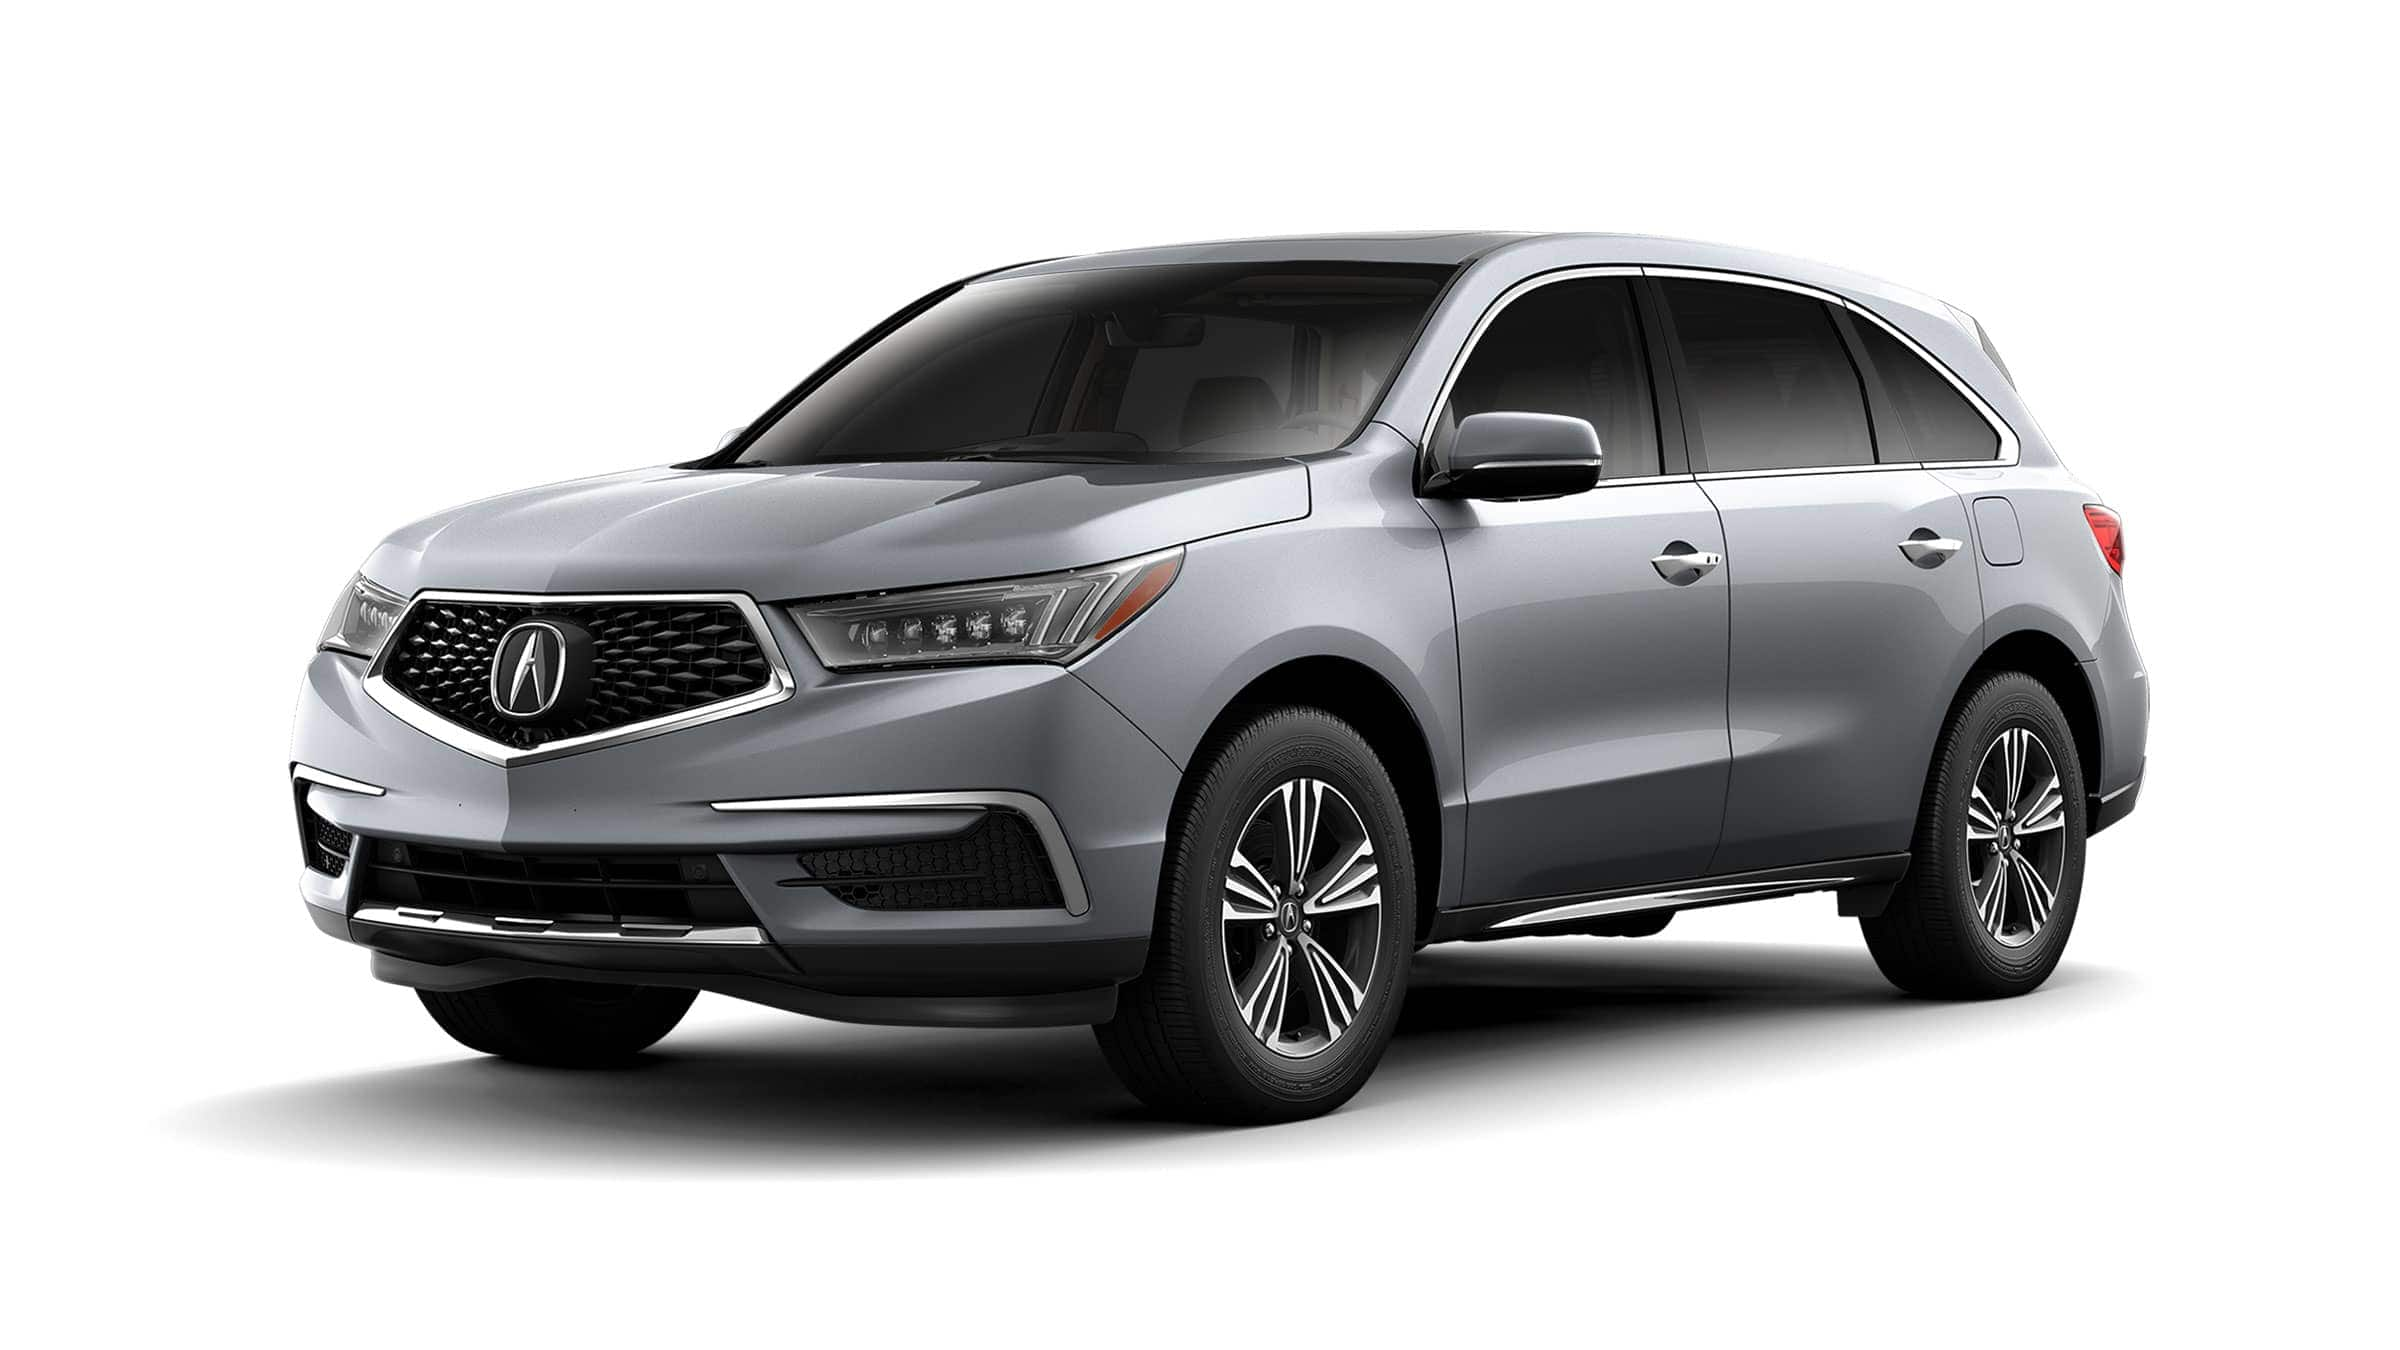 16 The 2019 Acura Rdx Lease Prices Release Date Reviews for 2019 Acura Rdx Lease Prices Release Date